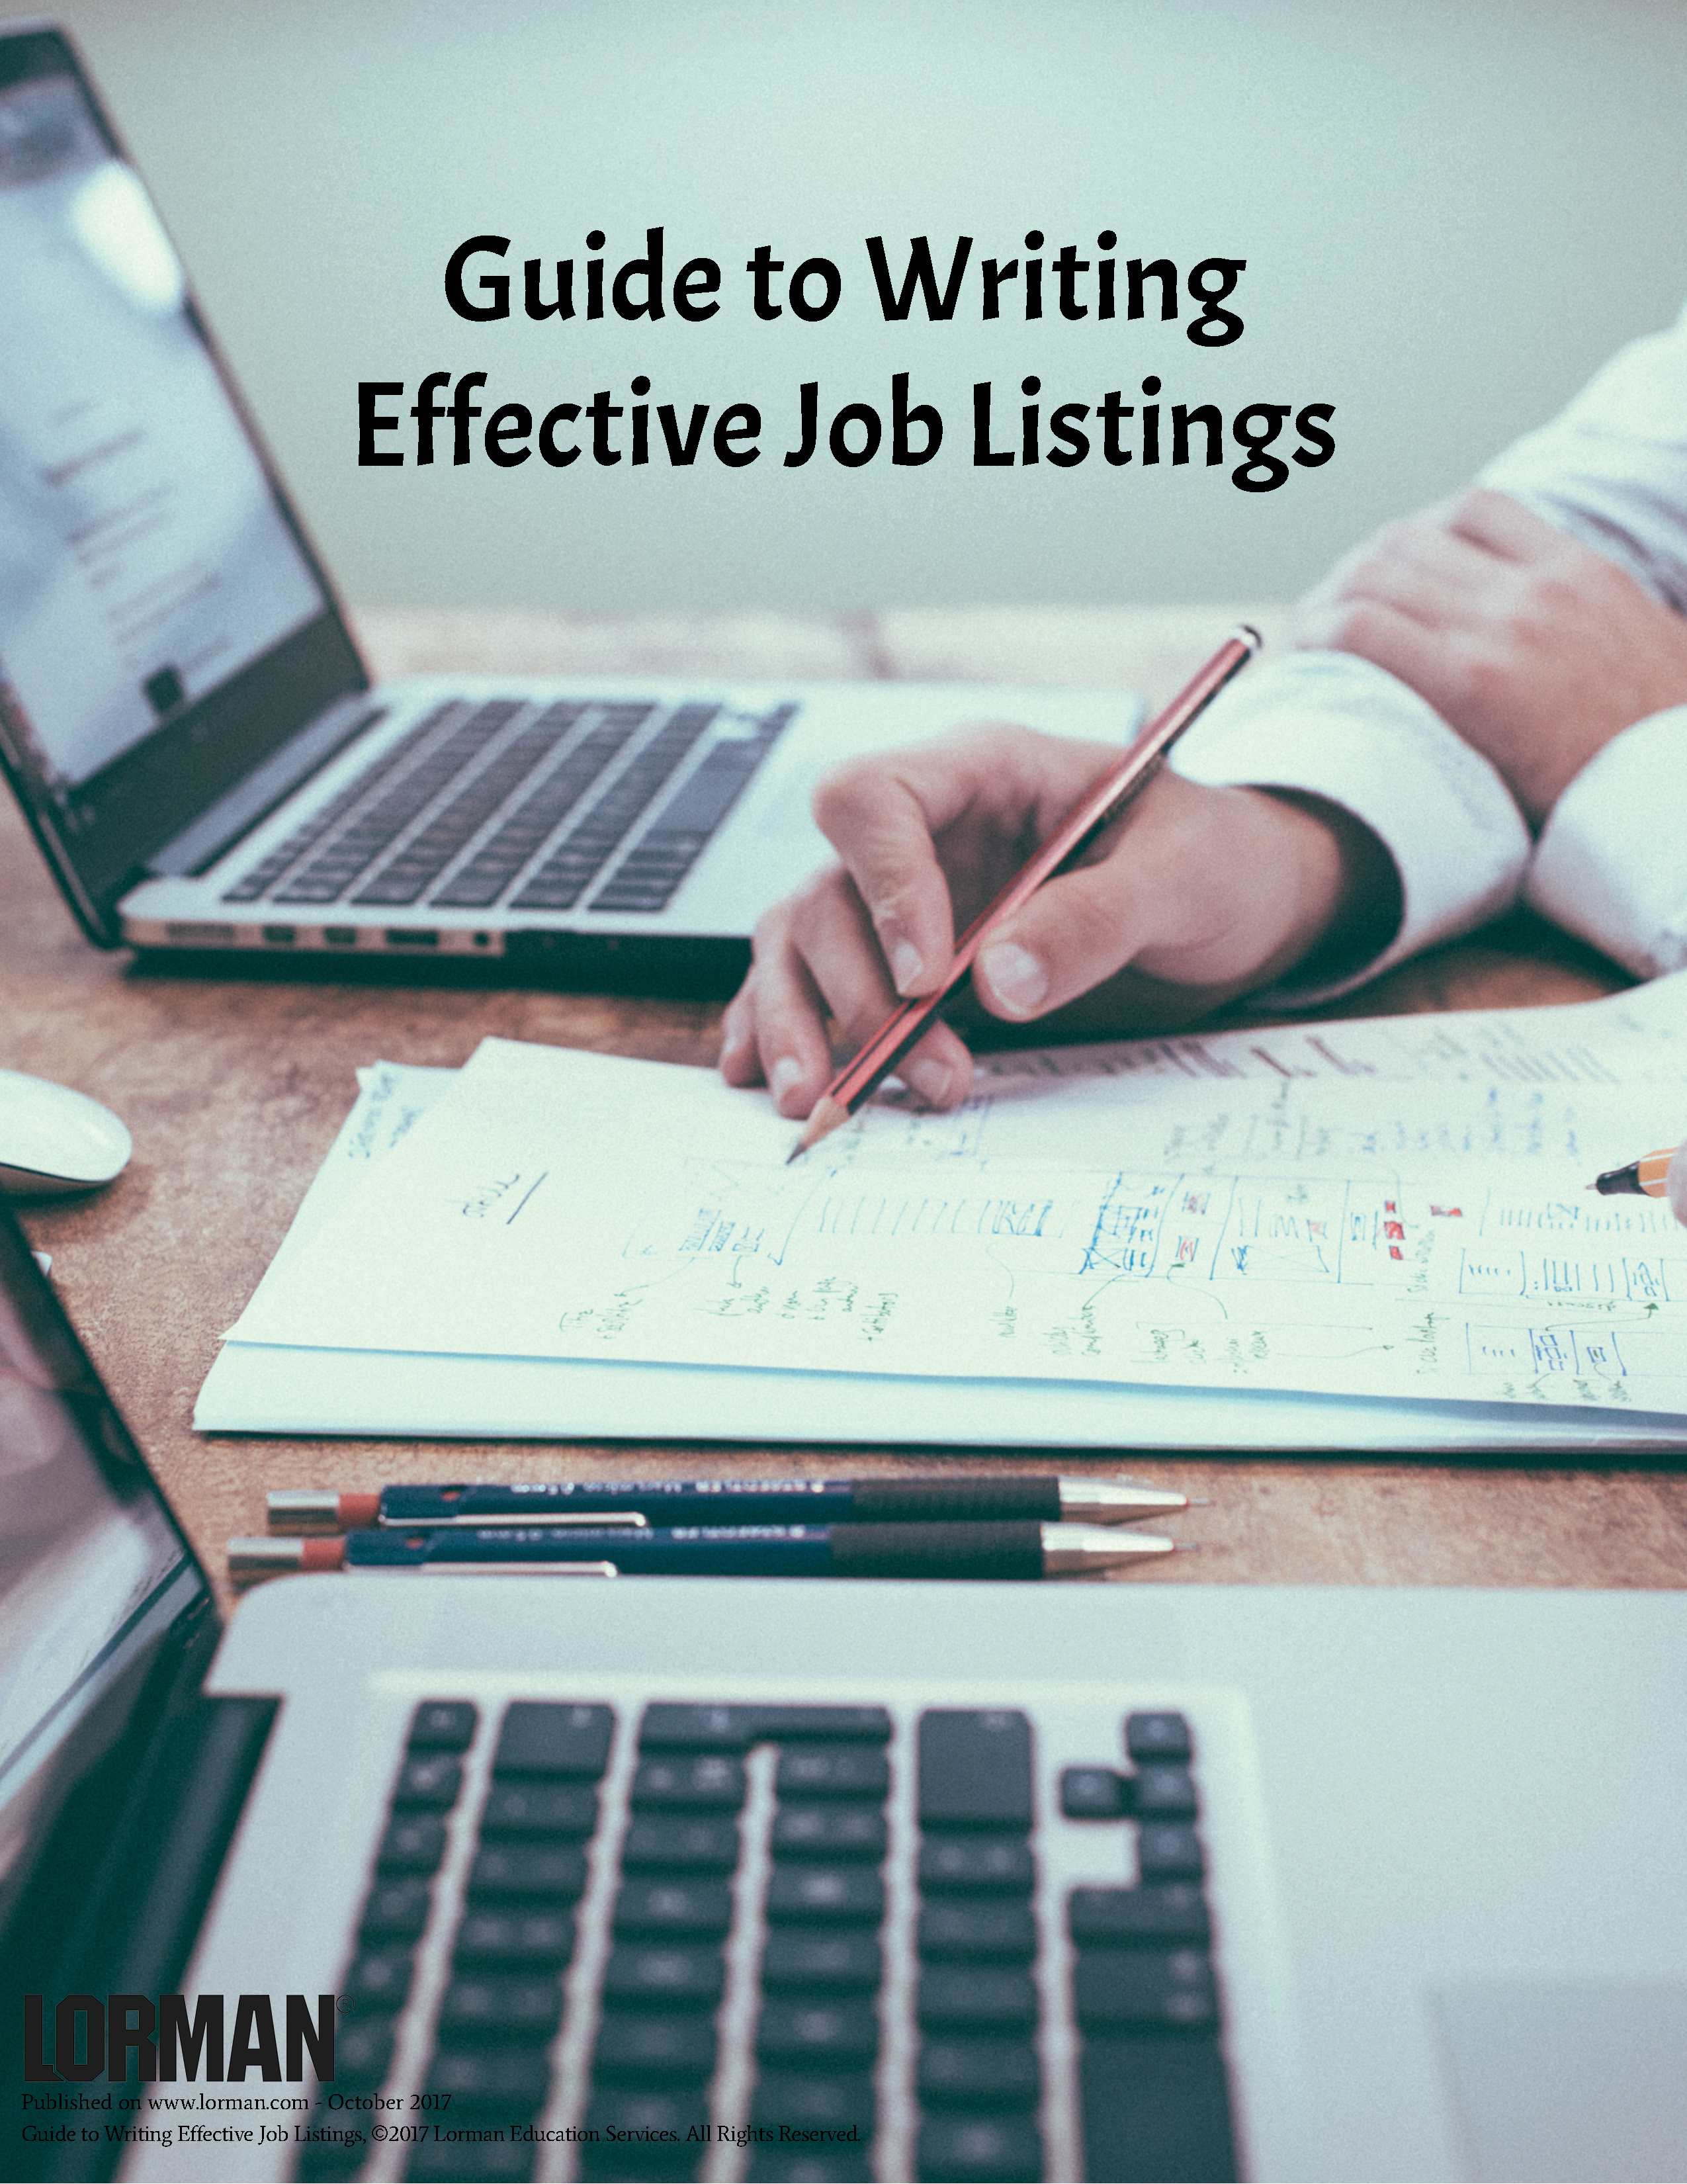 Guide to Writing Effective Job Listings